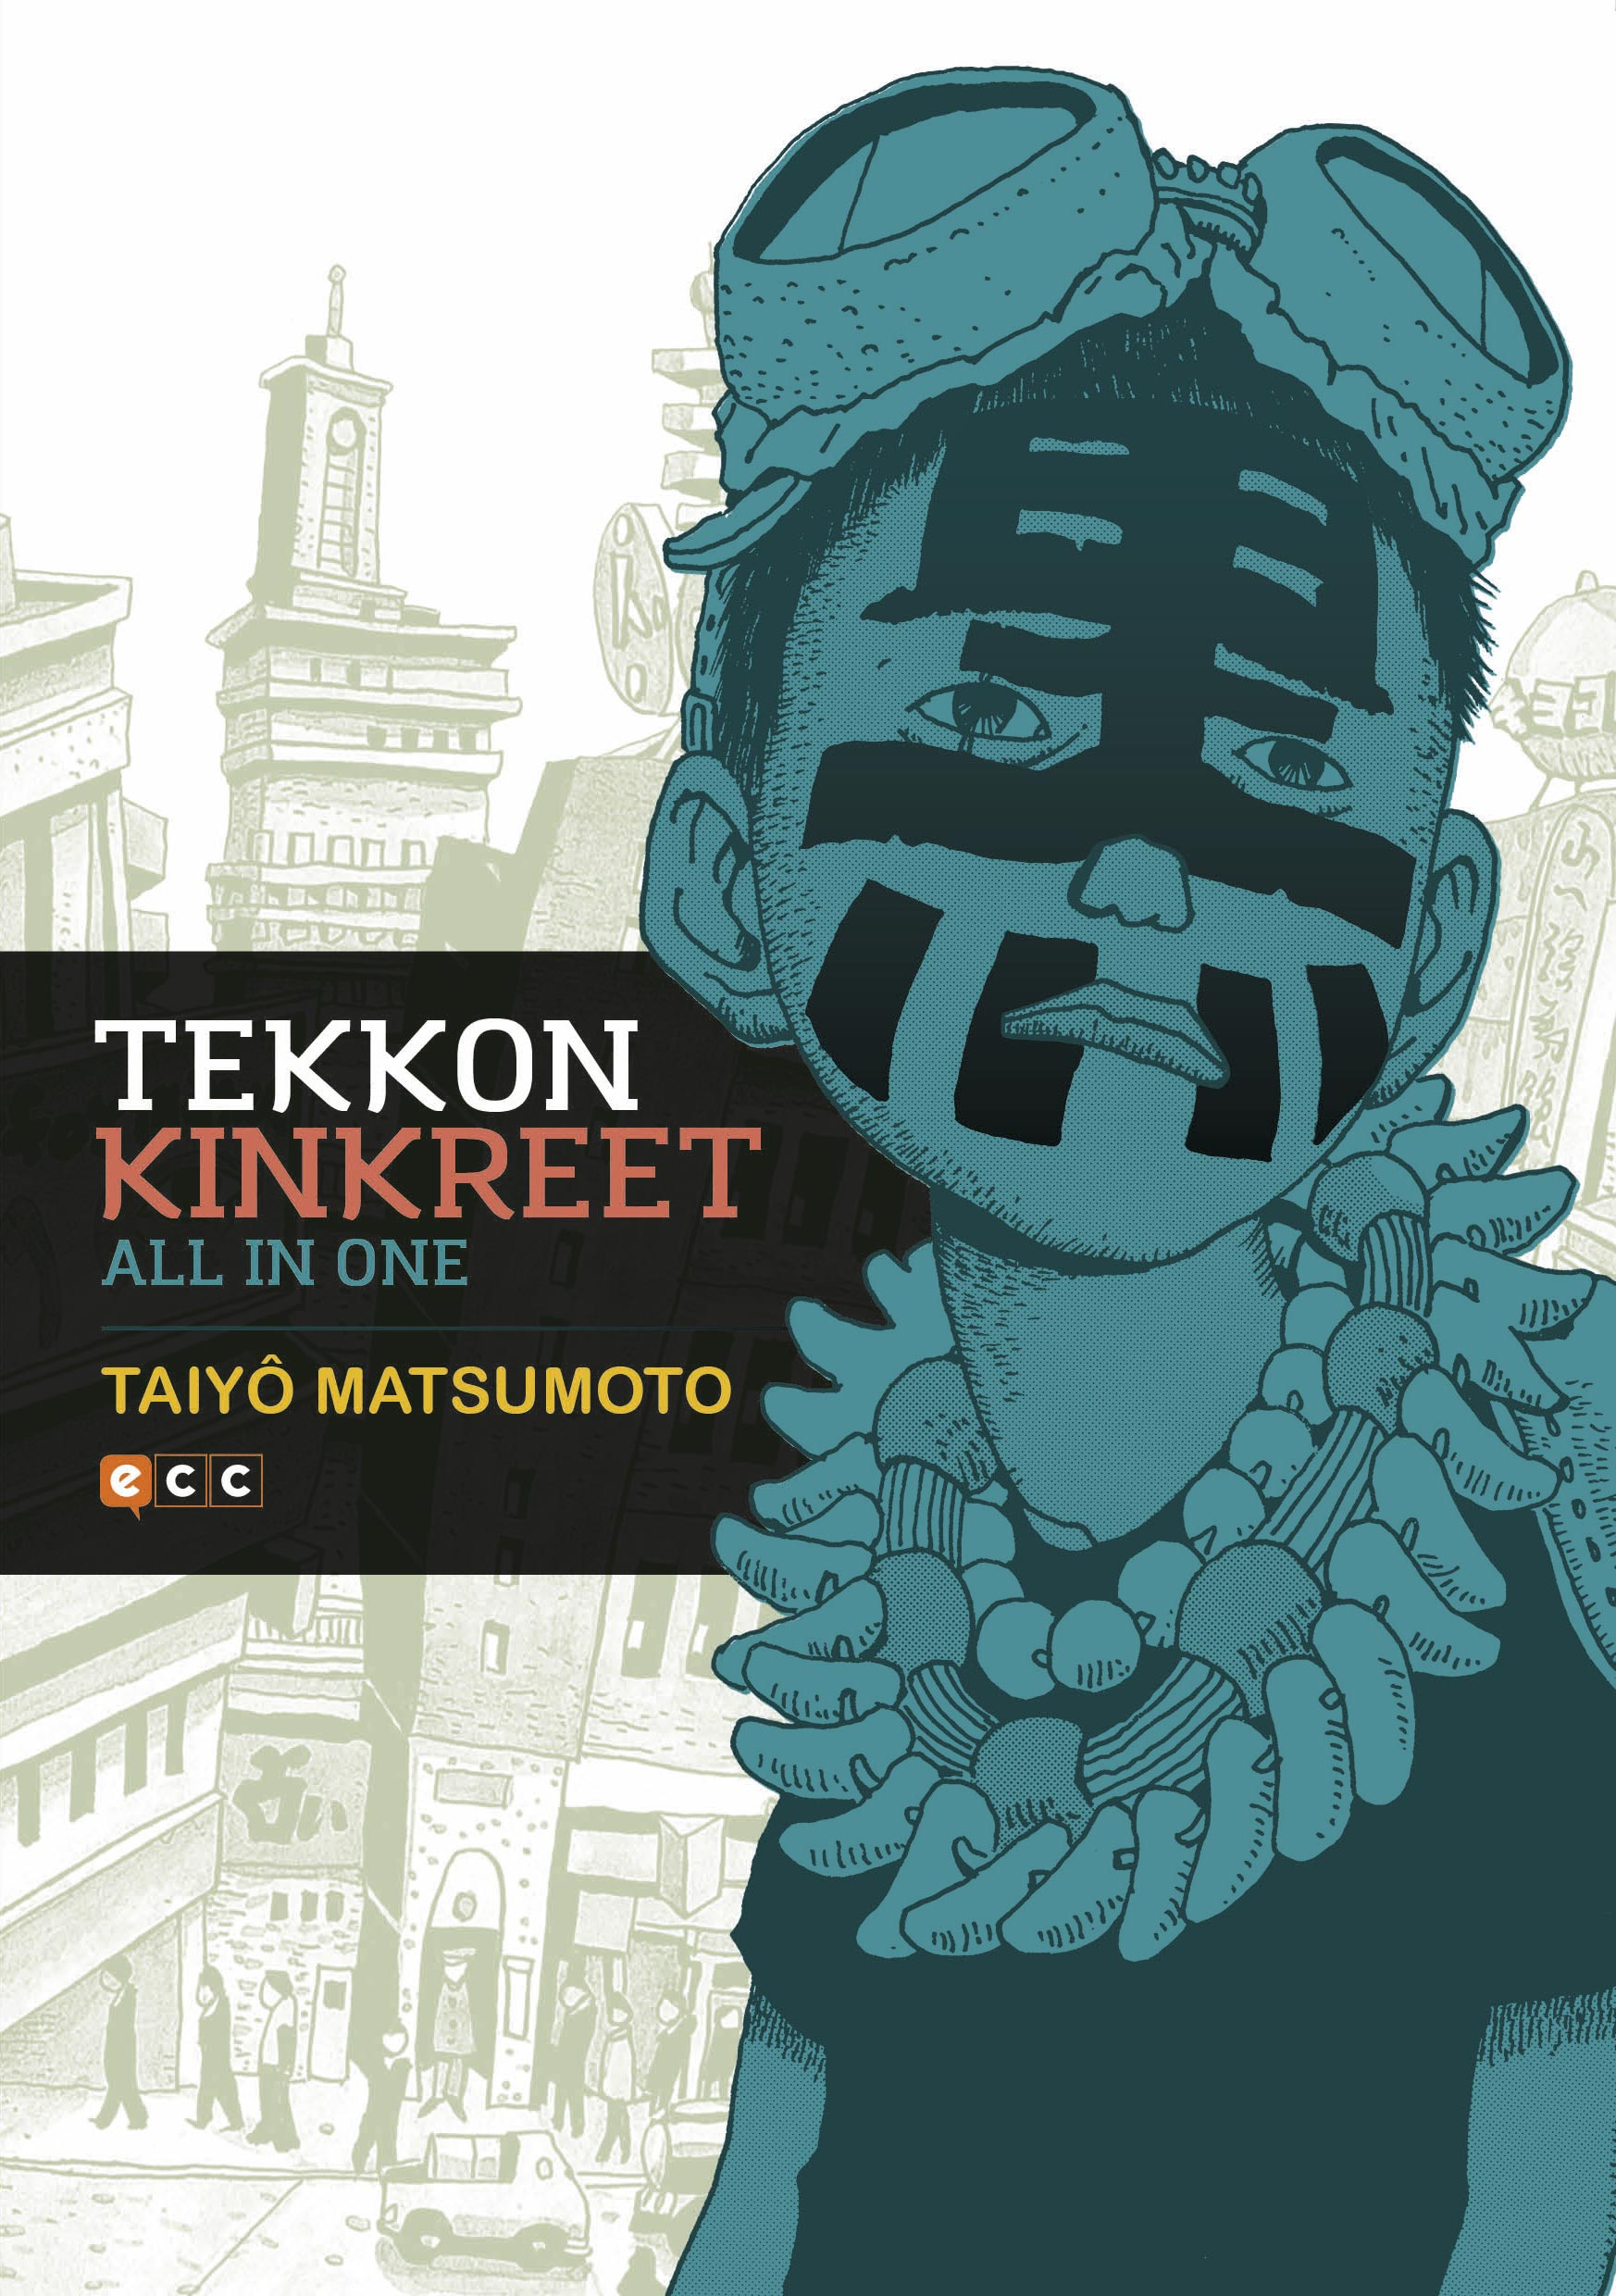 Tekkon Kinkreet: All in one